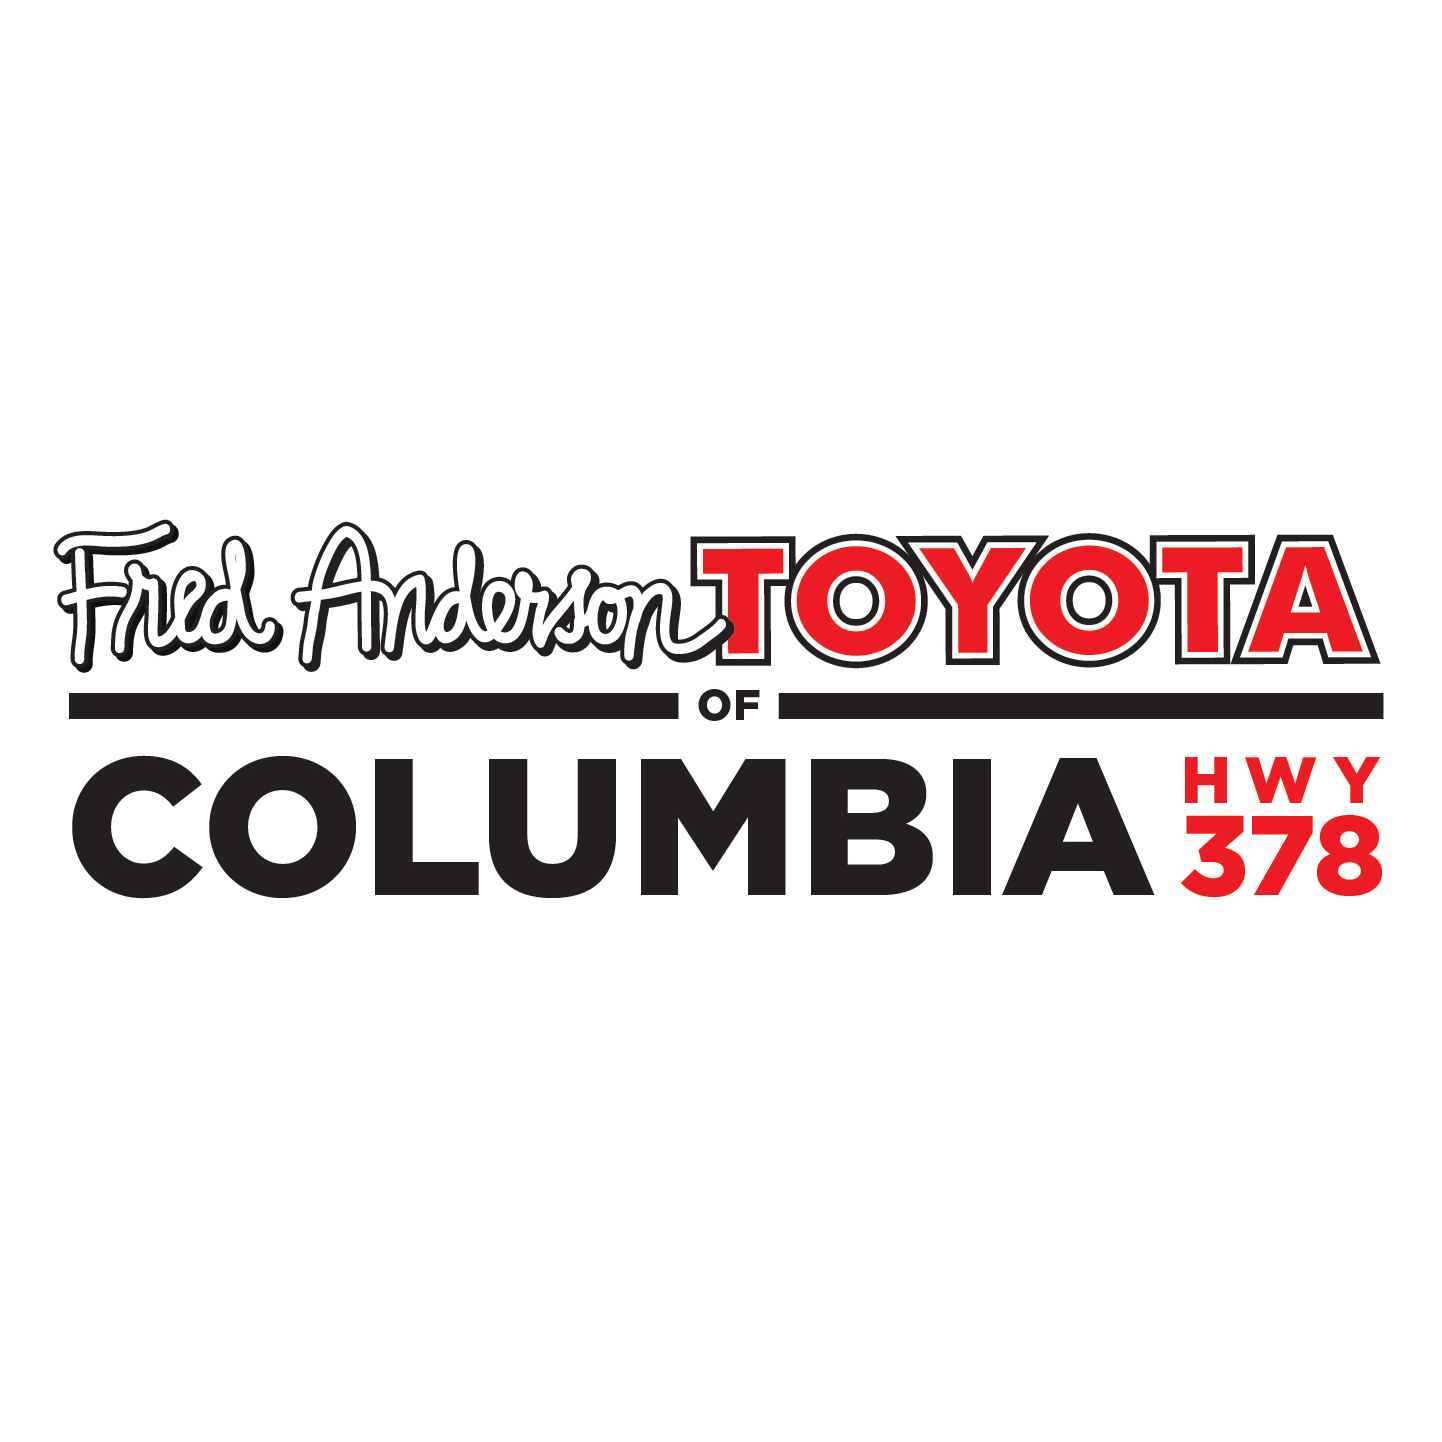 fred anderson toyota of columbia in west columbia sc 29169. Black Bedroom Furniture Sets. Home Design Ideas